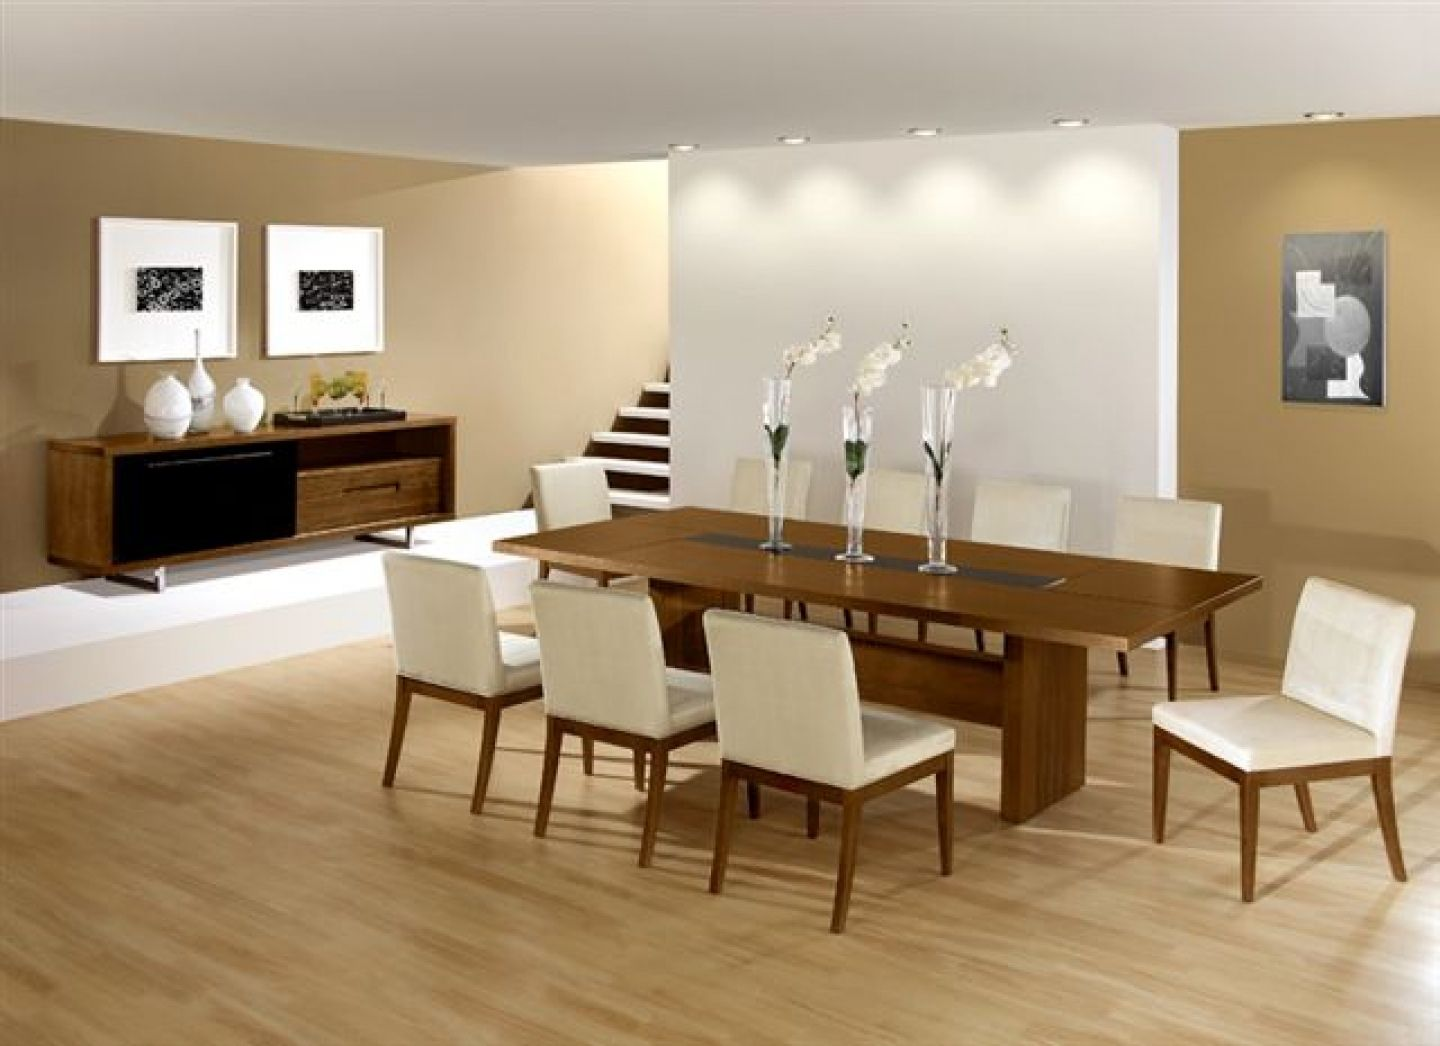 Modern Dining Room Table Decor Design Decorating 814979